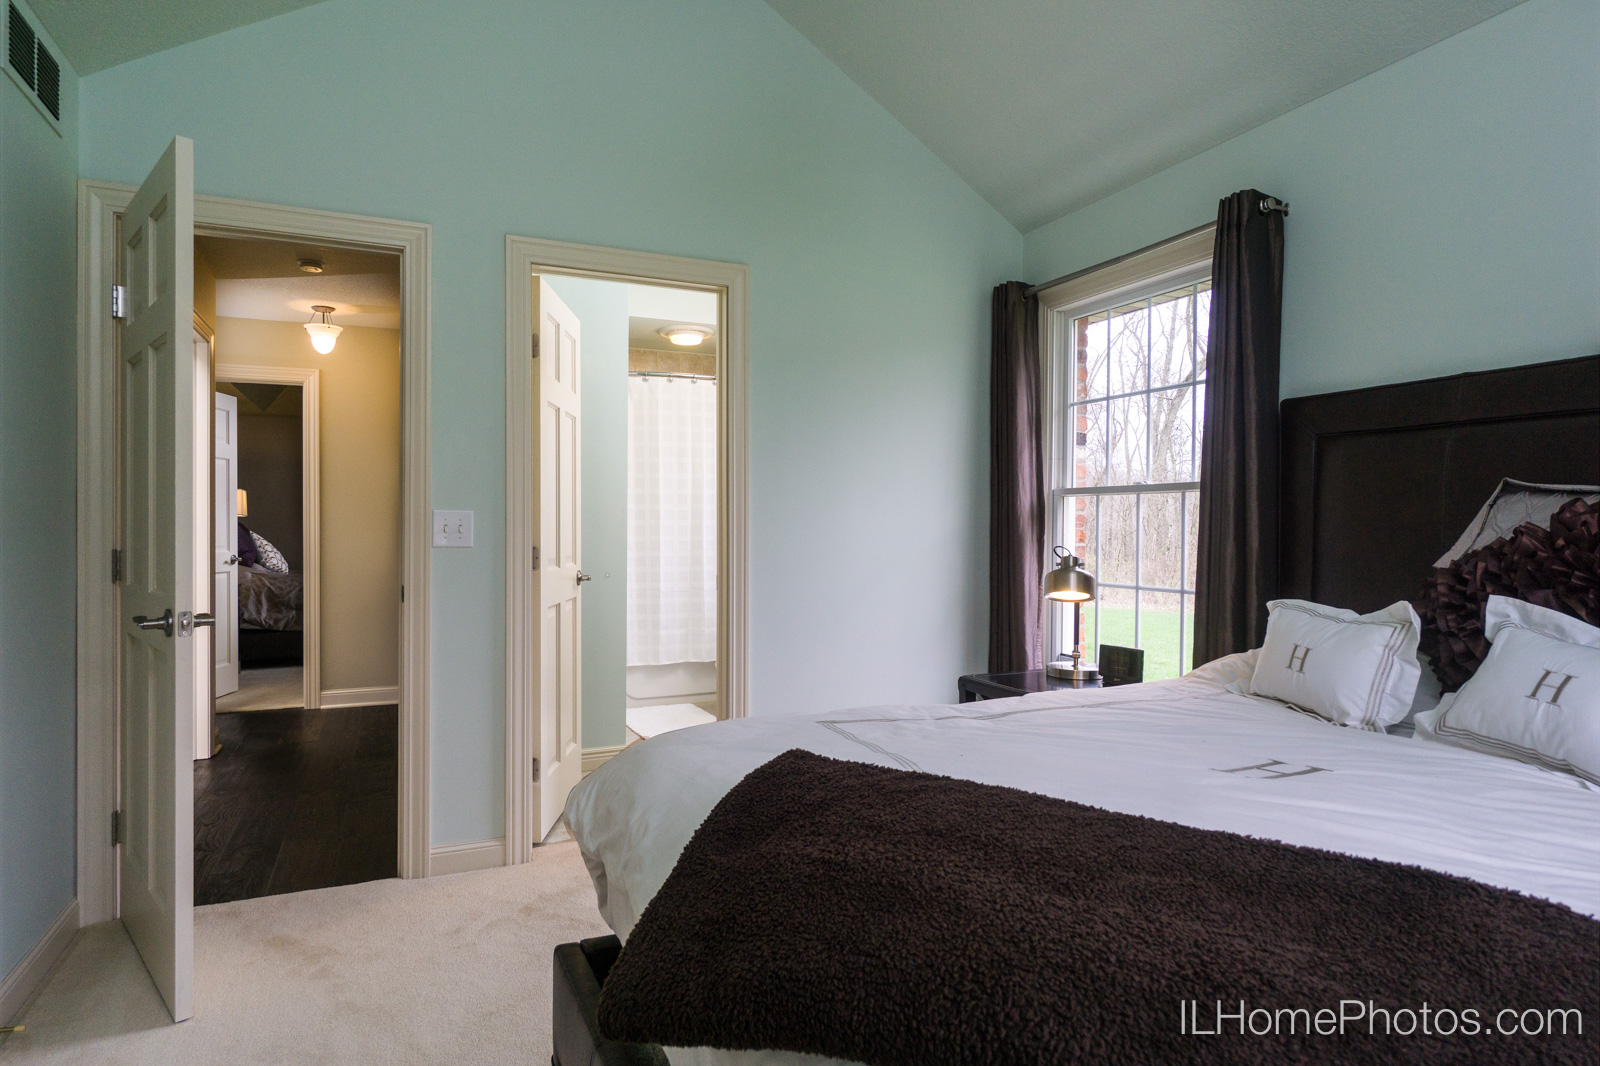 Interior bedroom photograph for real estate :: Illinois Home Photography by Michael Gowin, Lincoln, IL